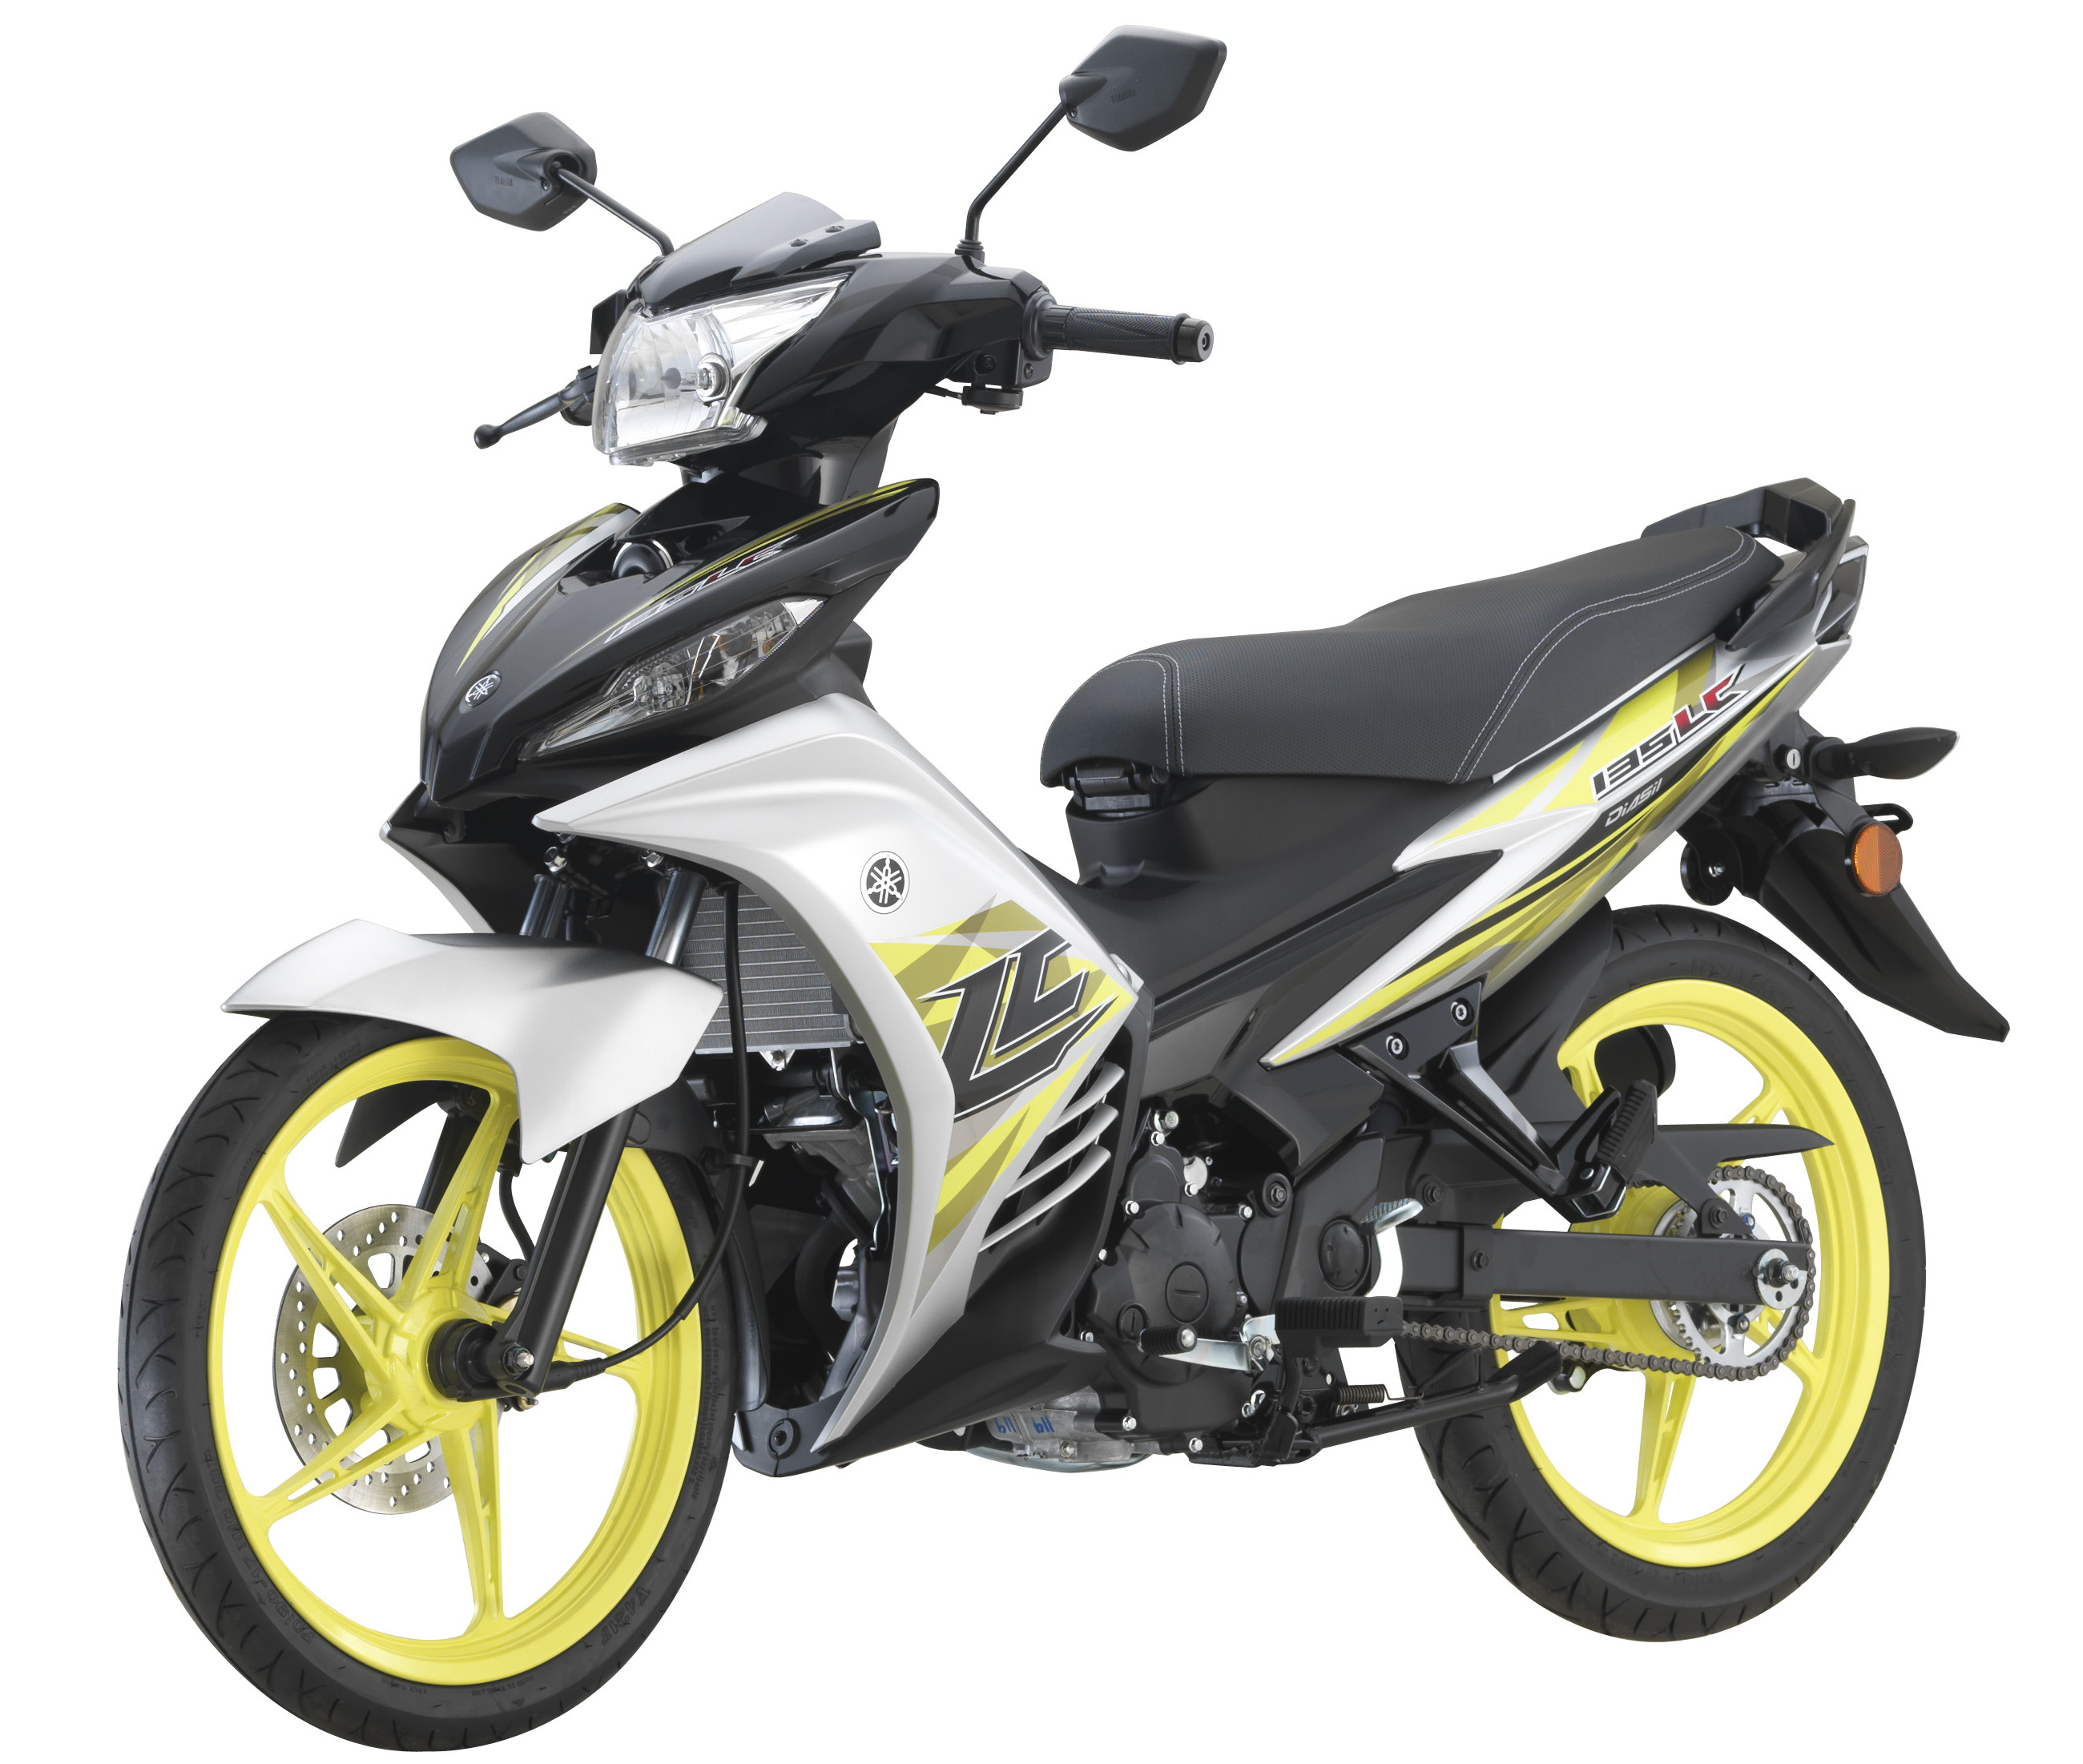 2017 yamaha y135lc in new colours rm7 167 image 693774